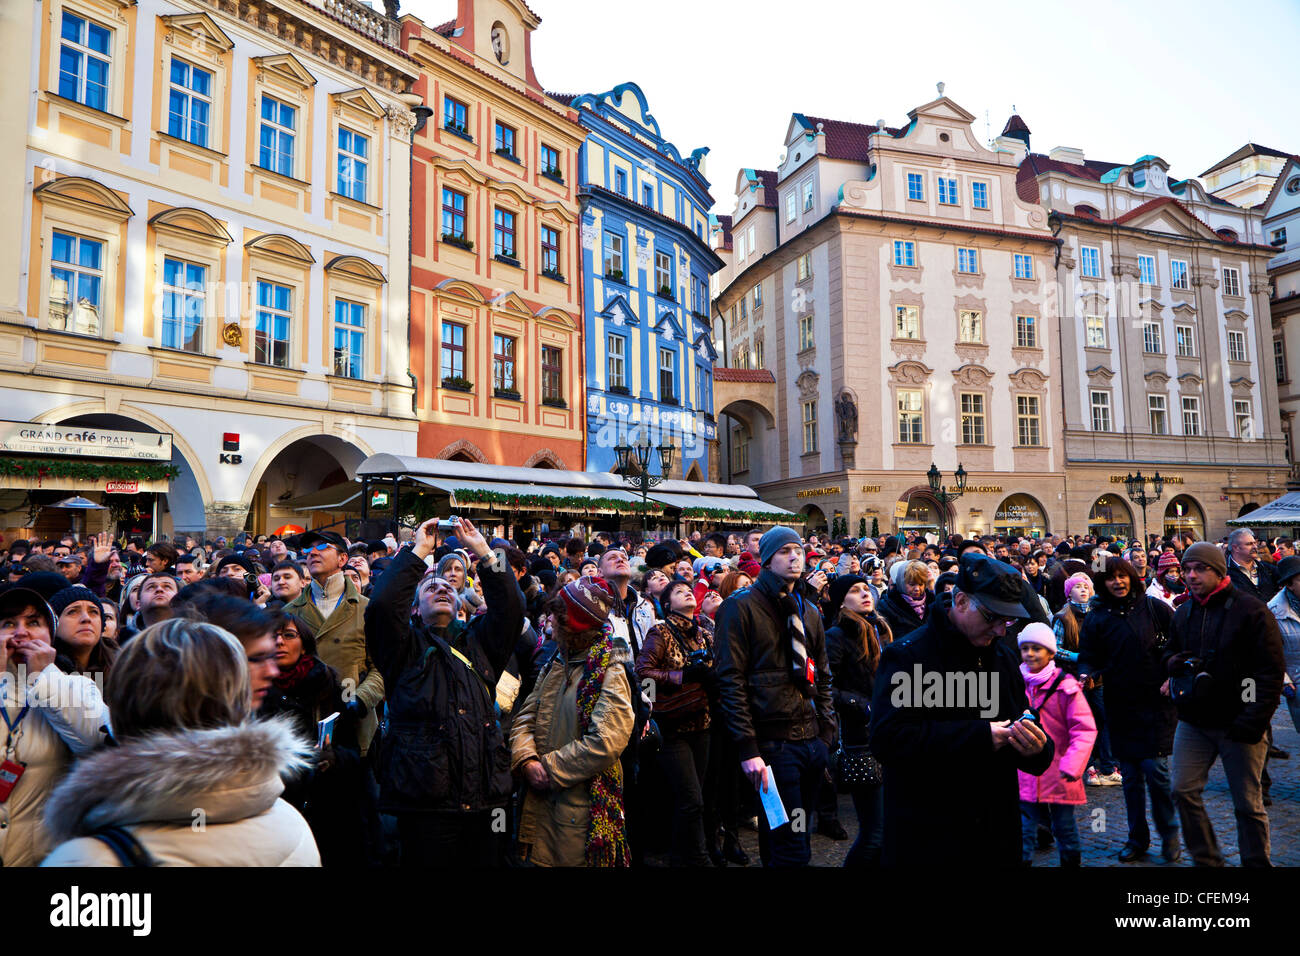 Tourists gathered to watch the Astronomical Clock striking the hour in Prague, Czech Republic - Stock Image